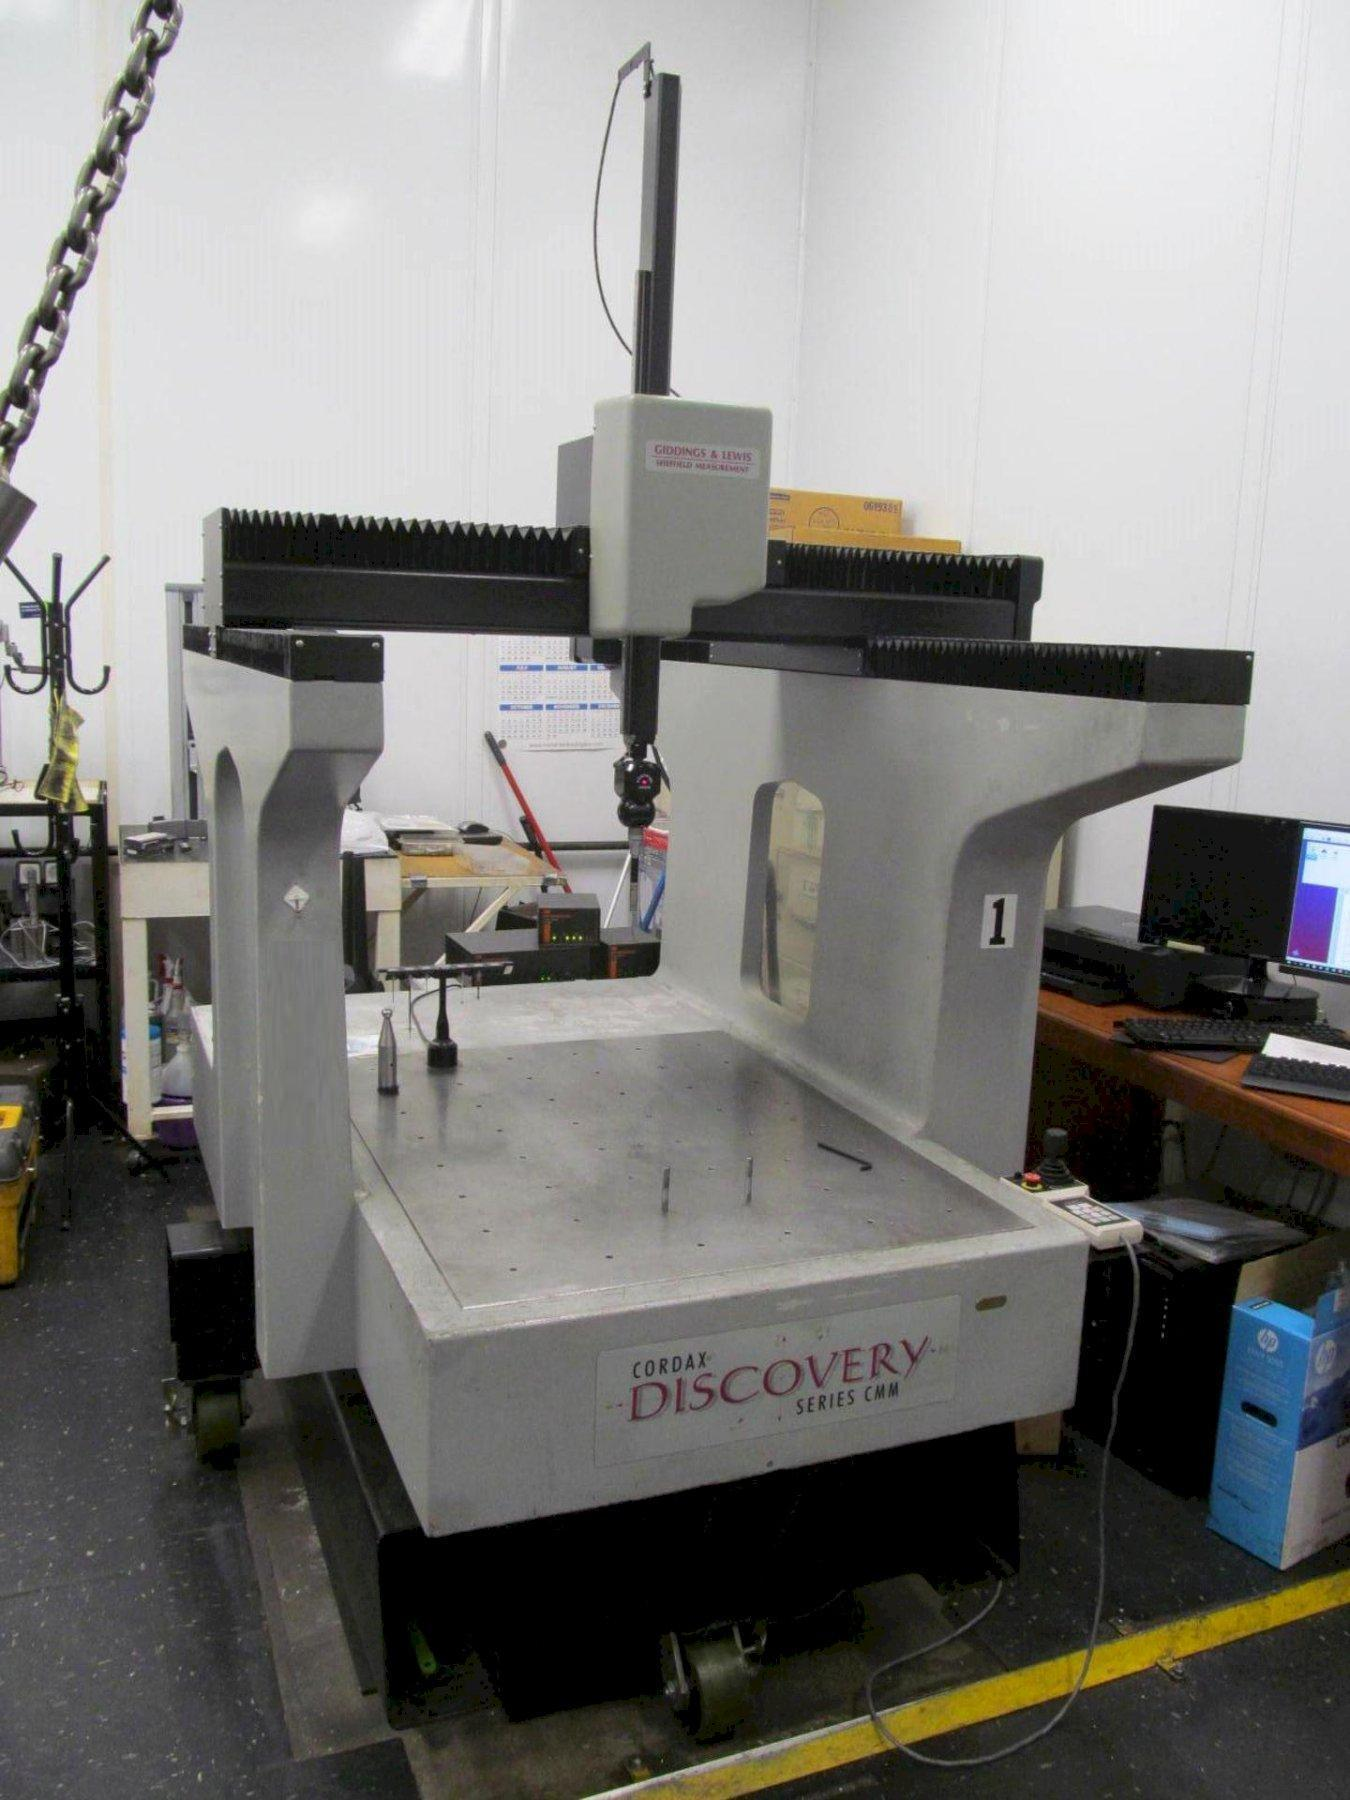 Sheffield Discovery D28 Coordinate Measuring Machine (CMM)